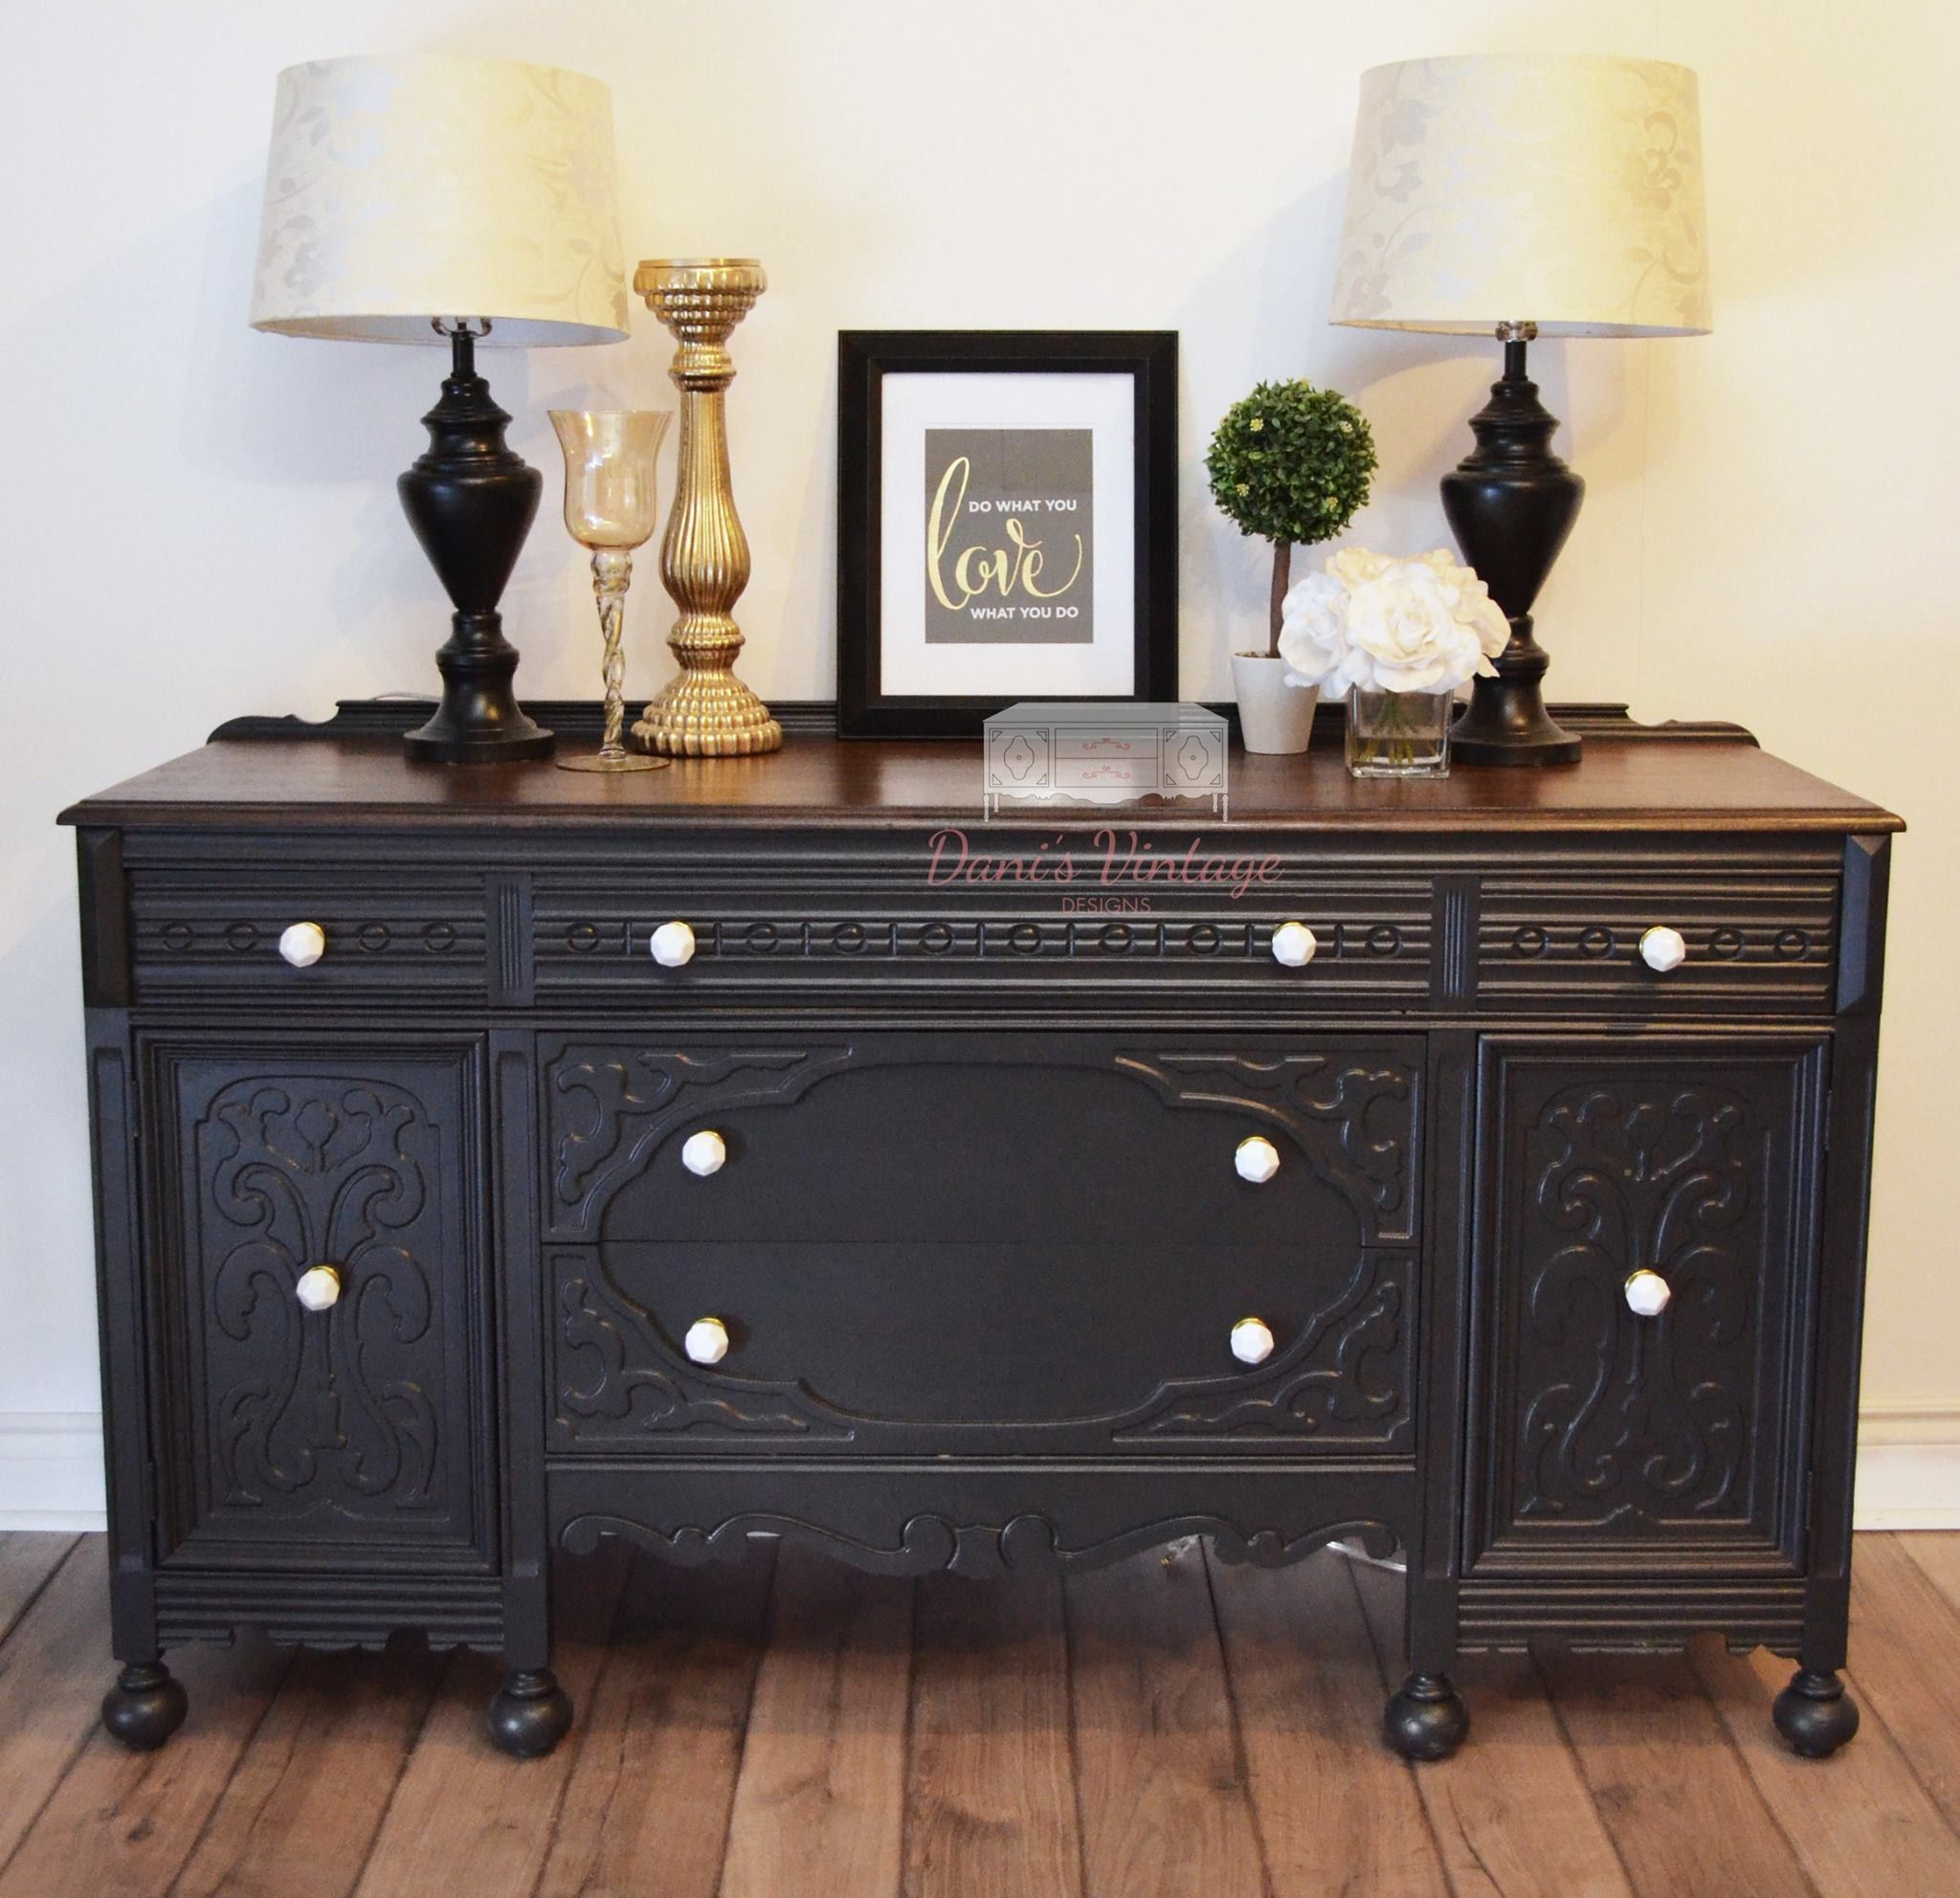 Cool Antique Black Buffet Sideboard With Stained Top Chalk Interior Design Ideas Helimdqseriescom